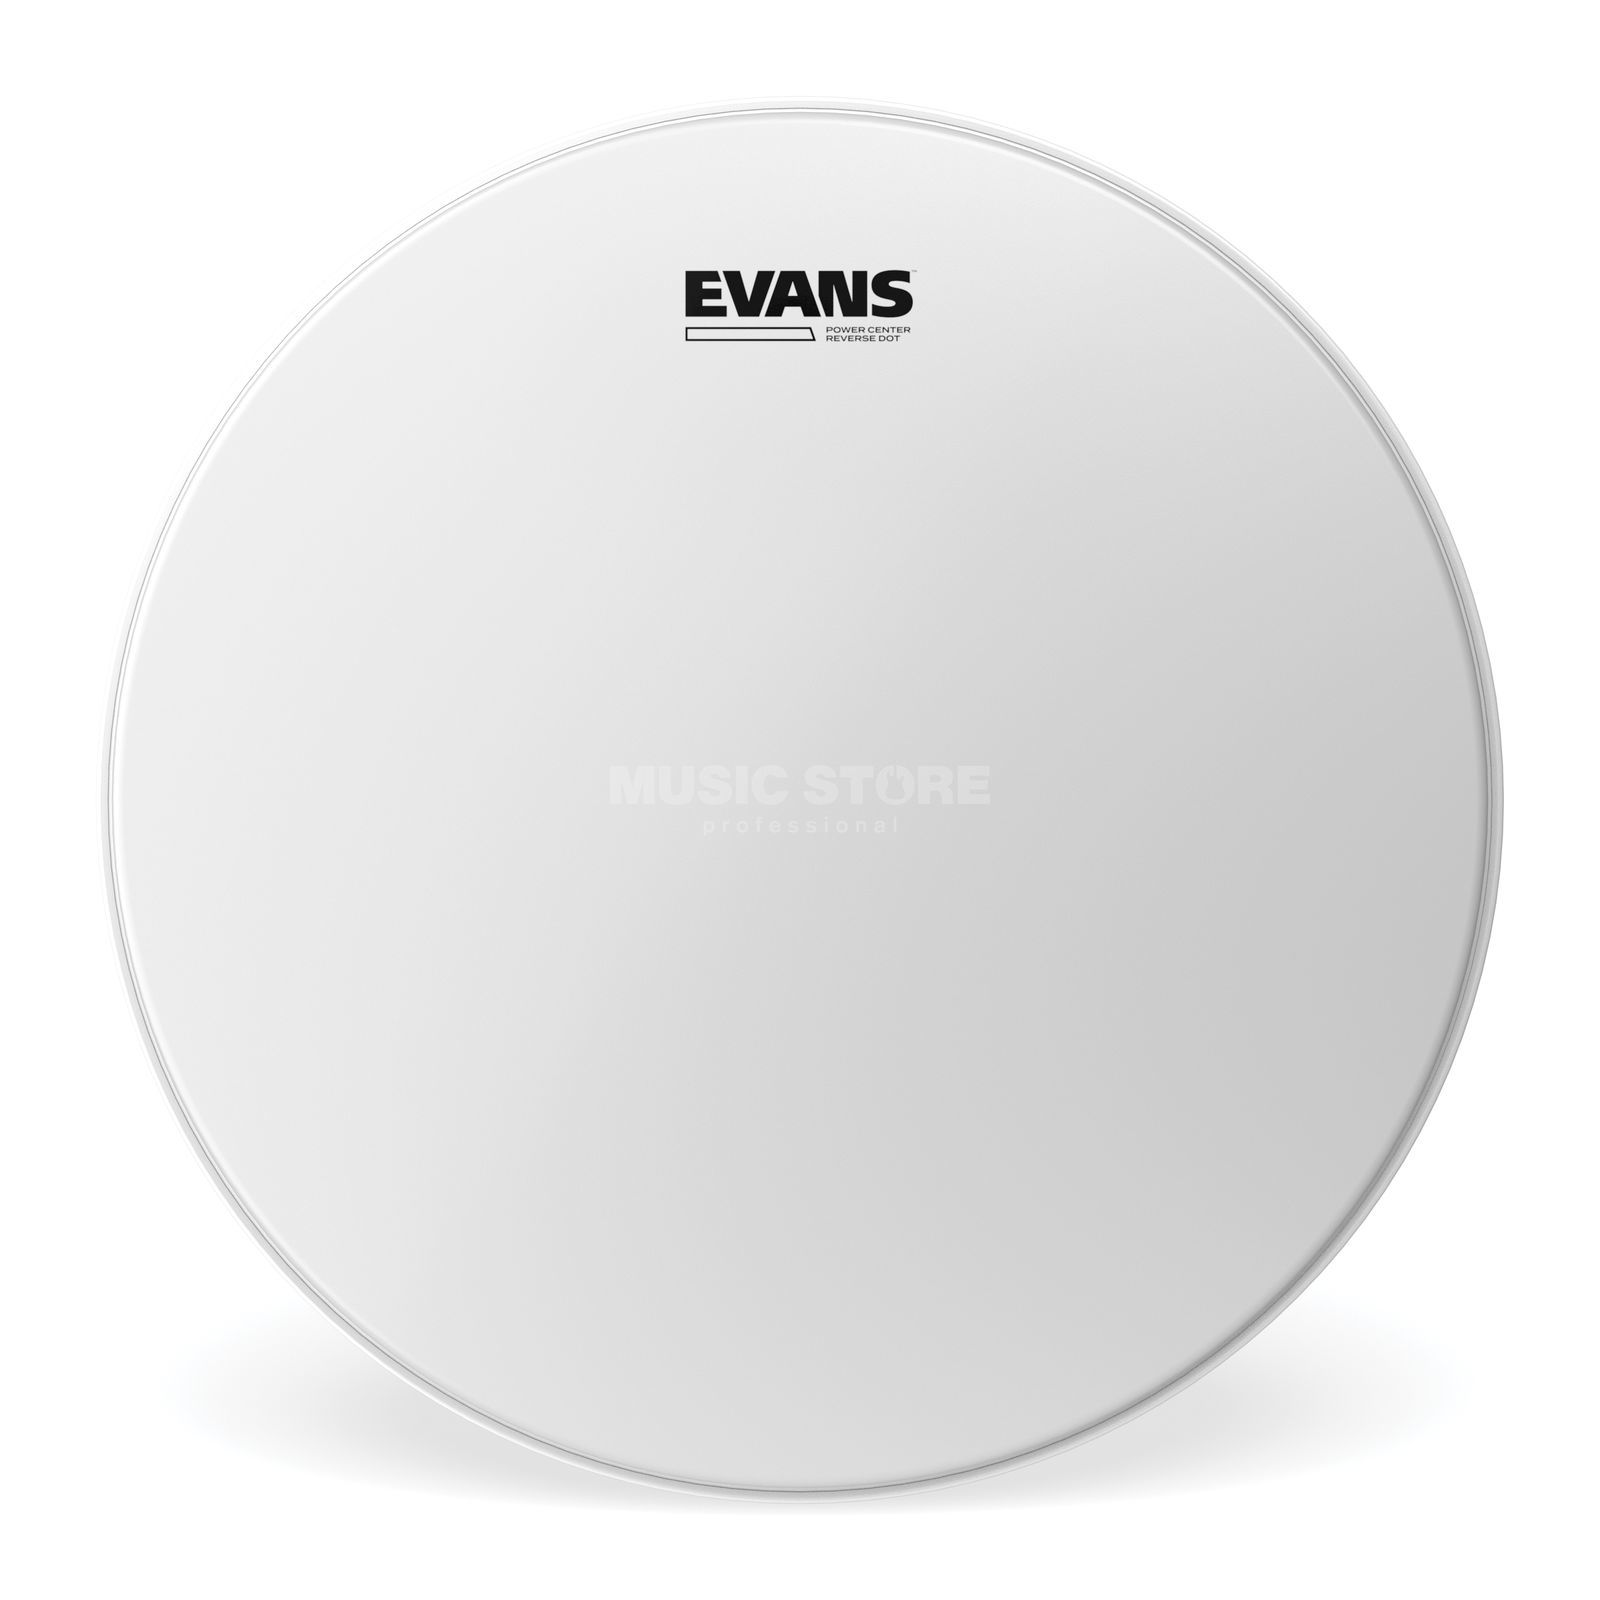 "Evans Power Center 14"", B14G1RD, Reverse Dot, Snare Batter Produktbillede"